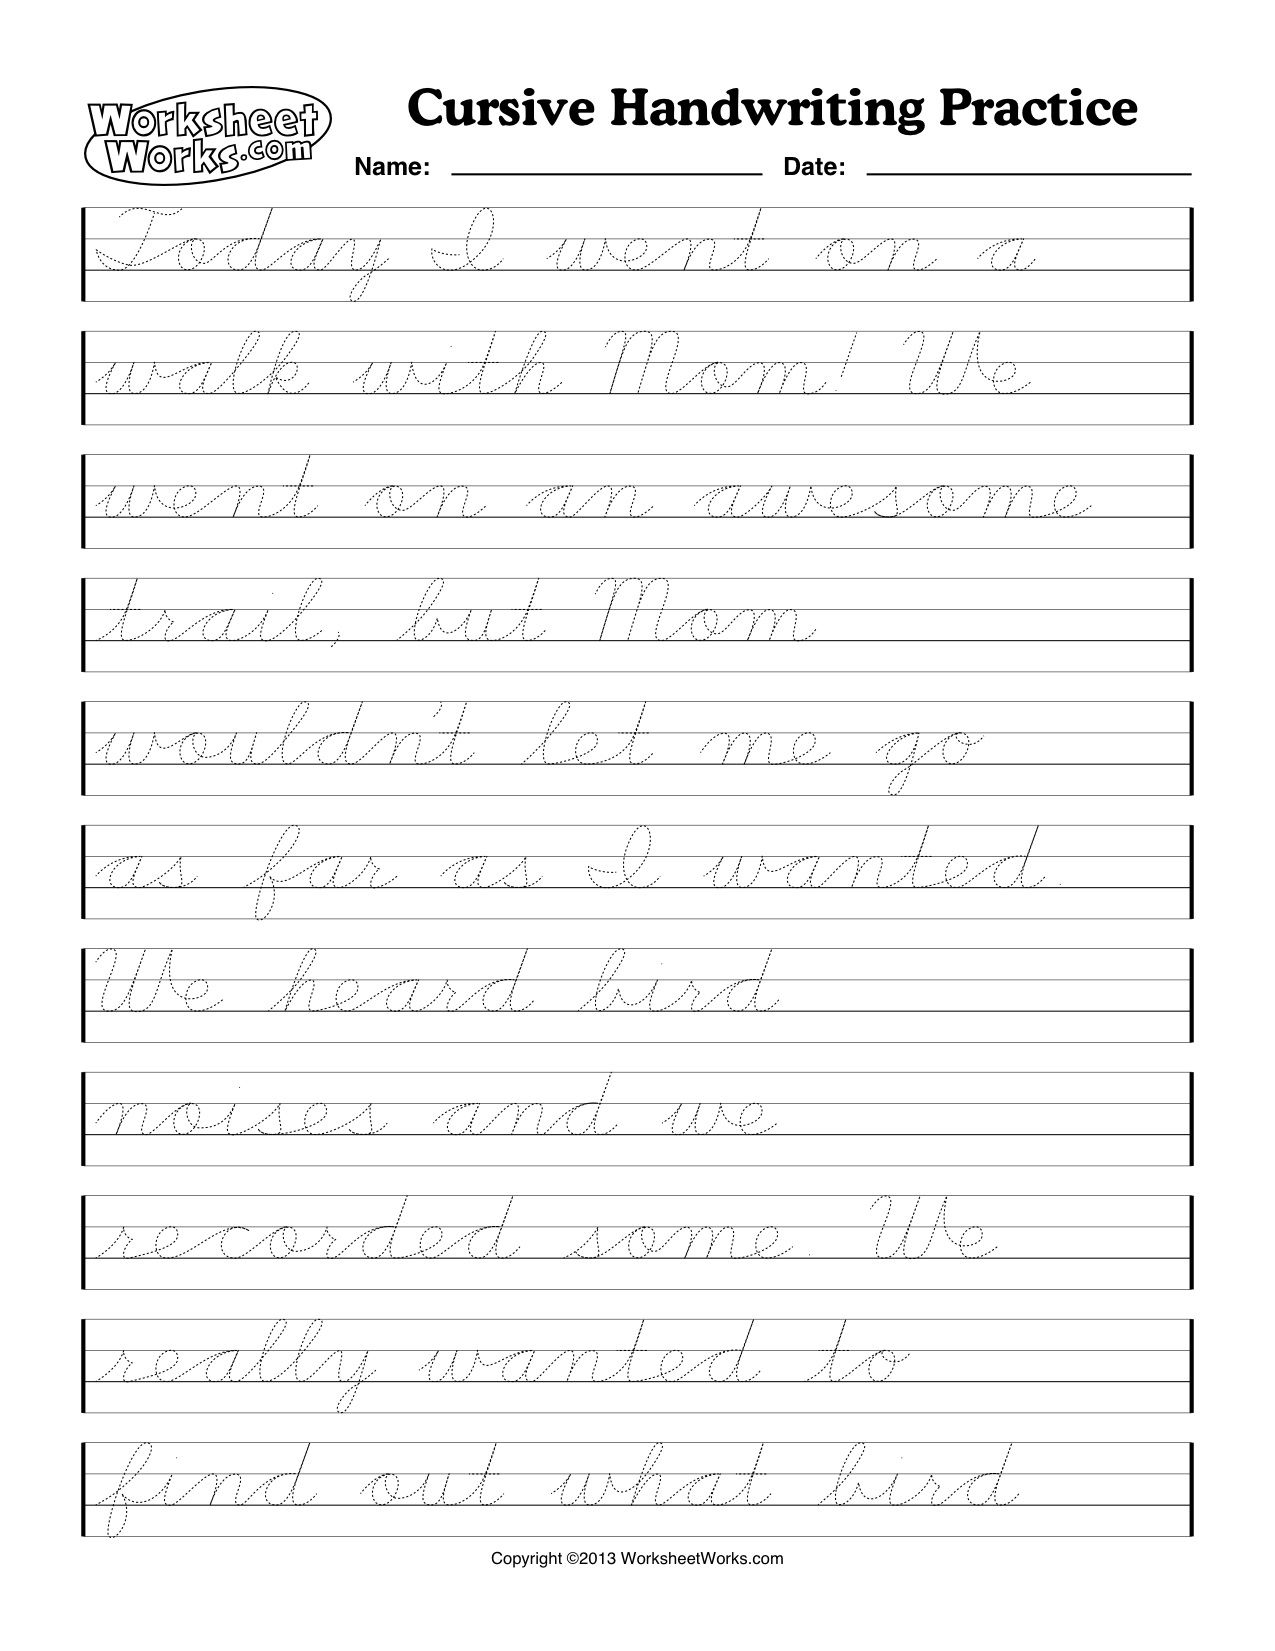 Printable Cursive Writing Paper - Koran.sticken.co | Printable Cursive Writing Worksheets